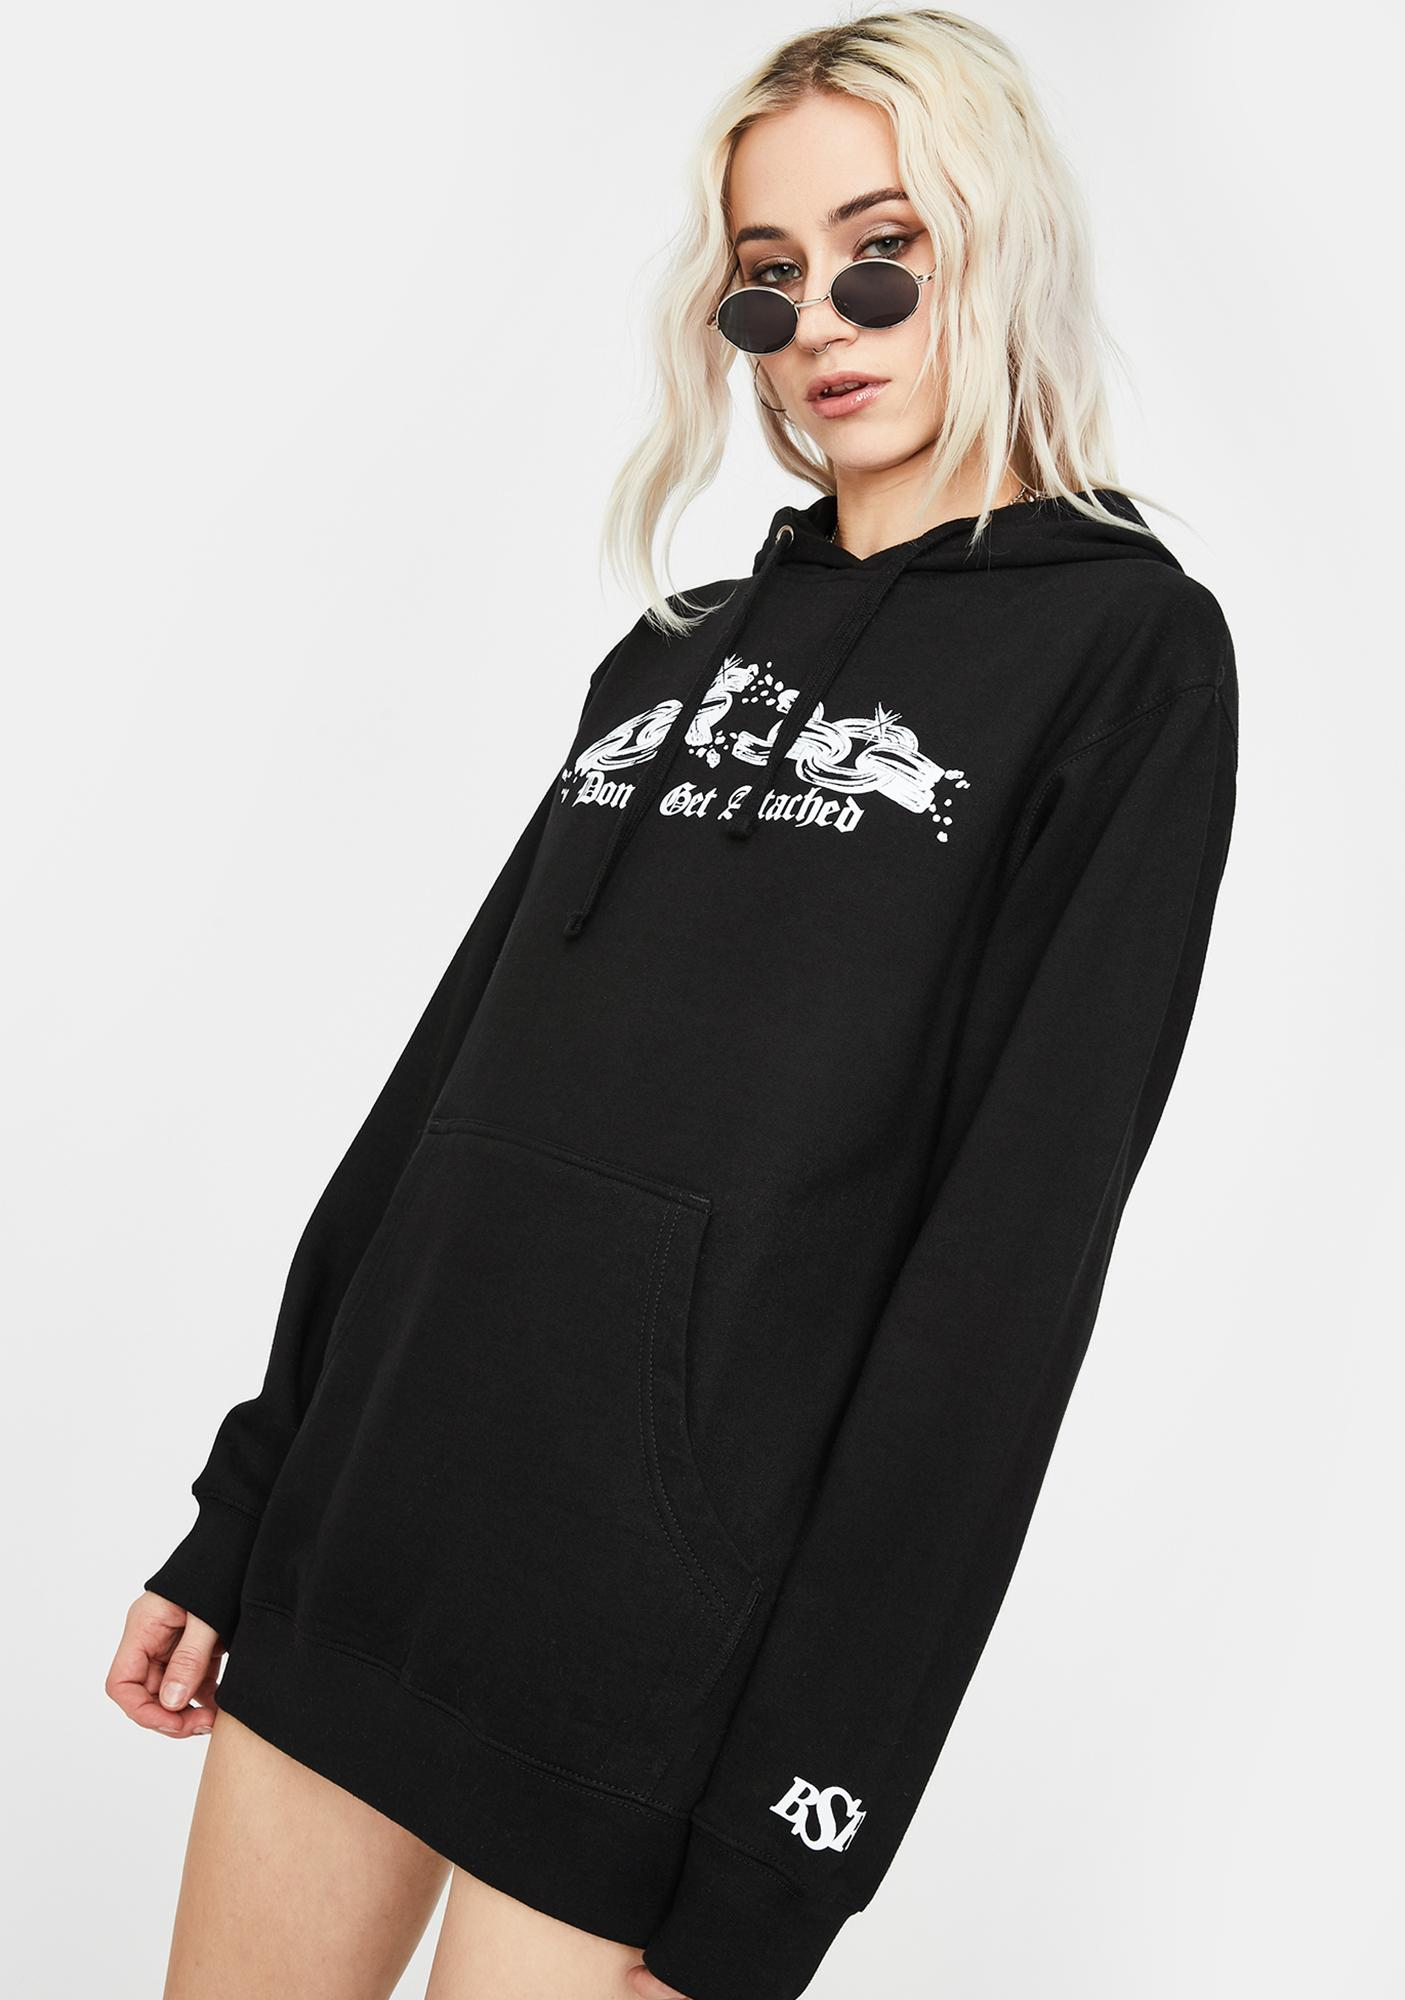 By Samii Ryan Black Attachments Graphic Hoodie